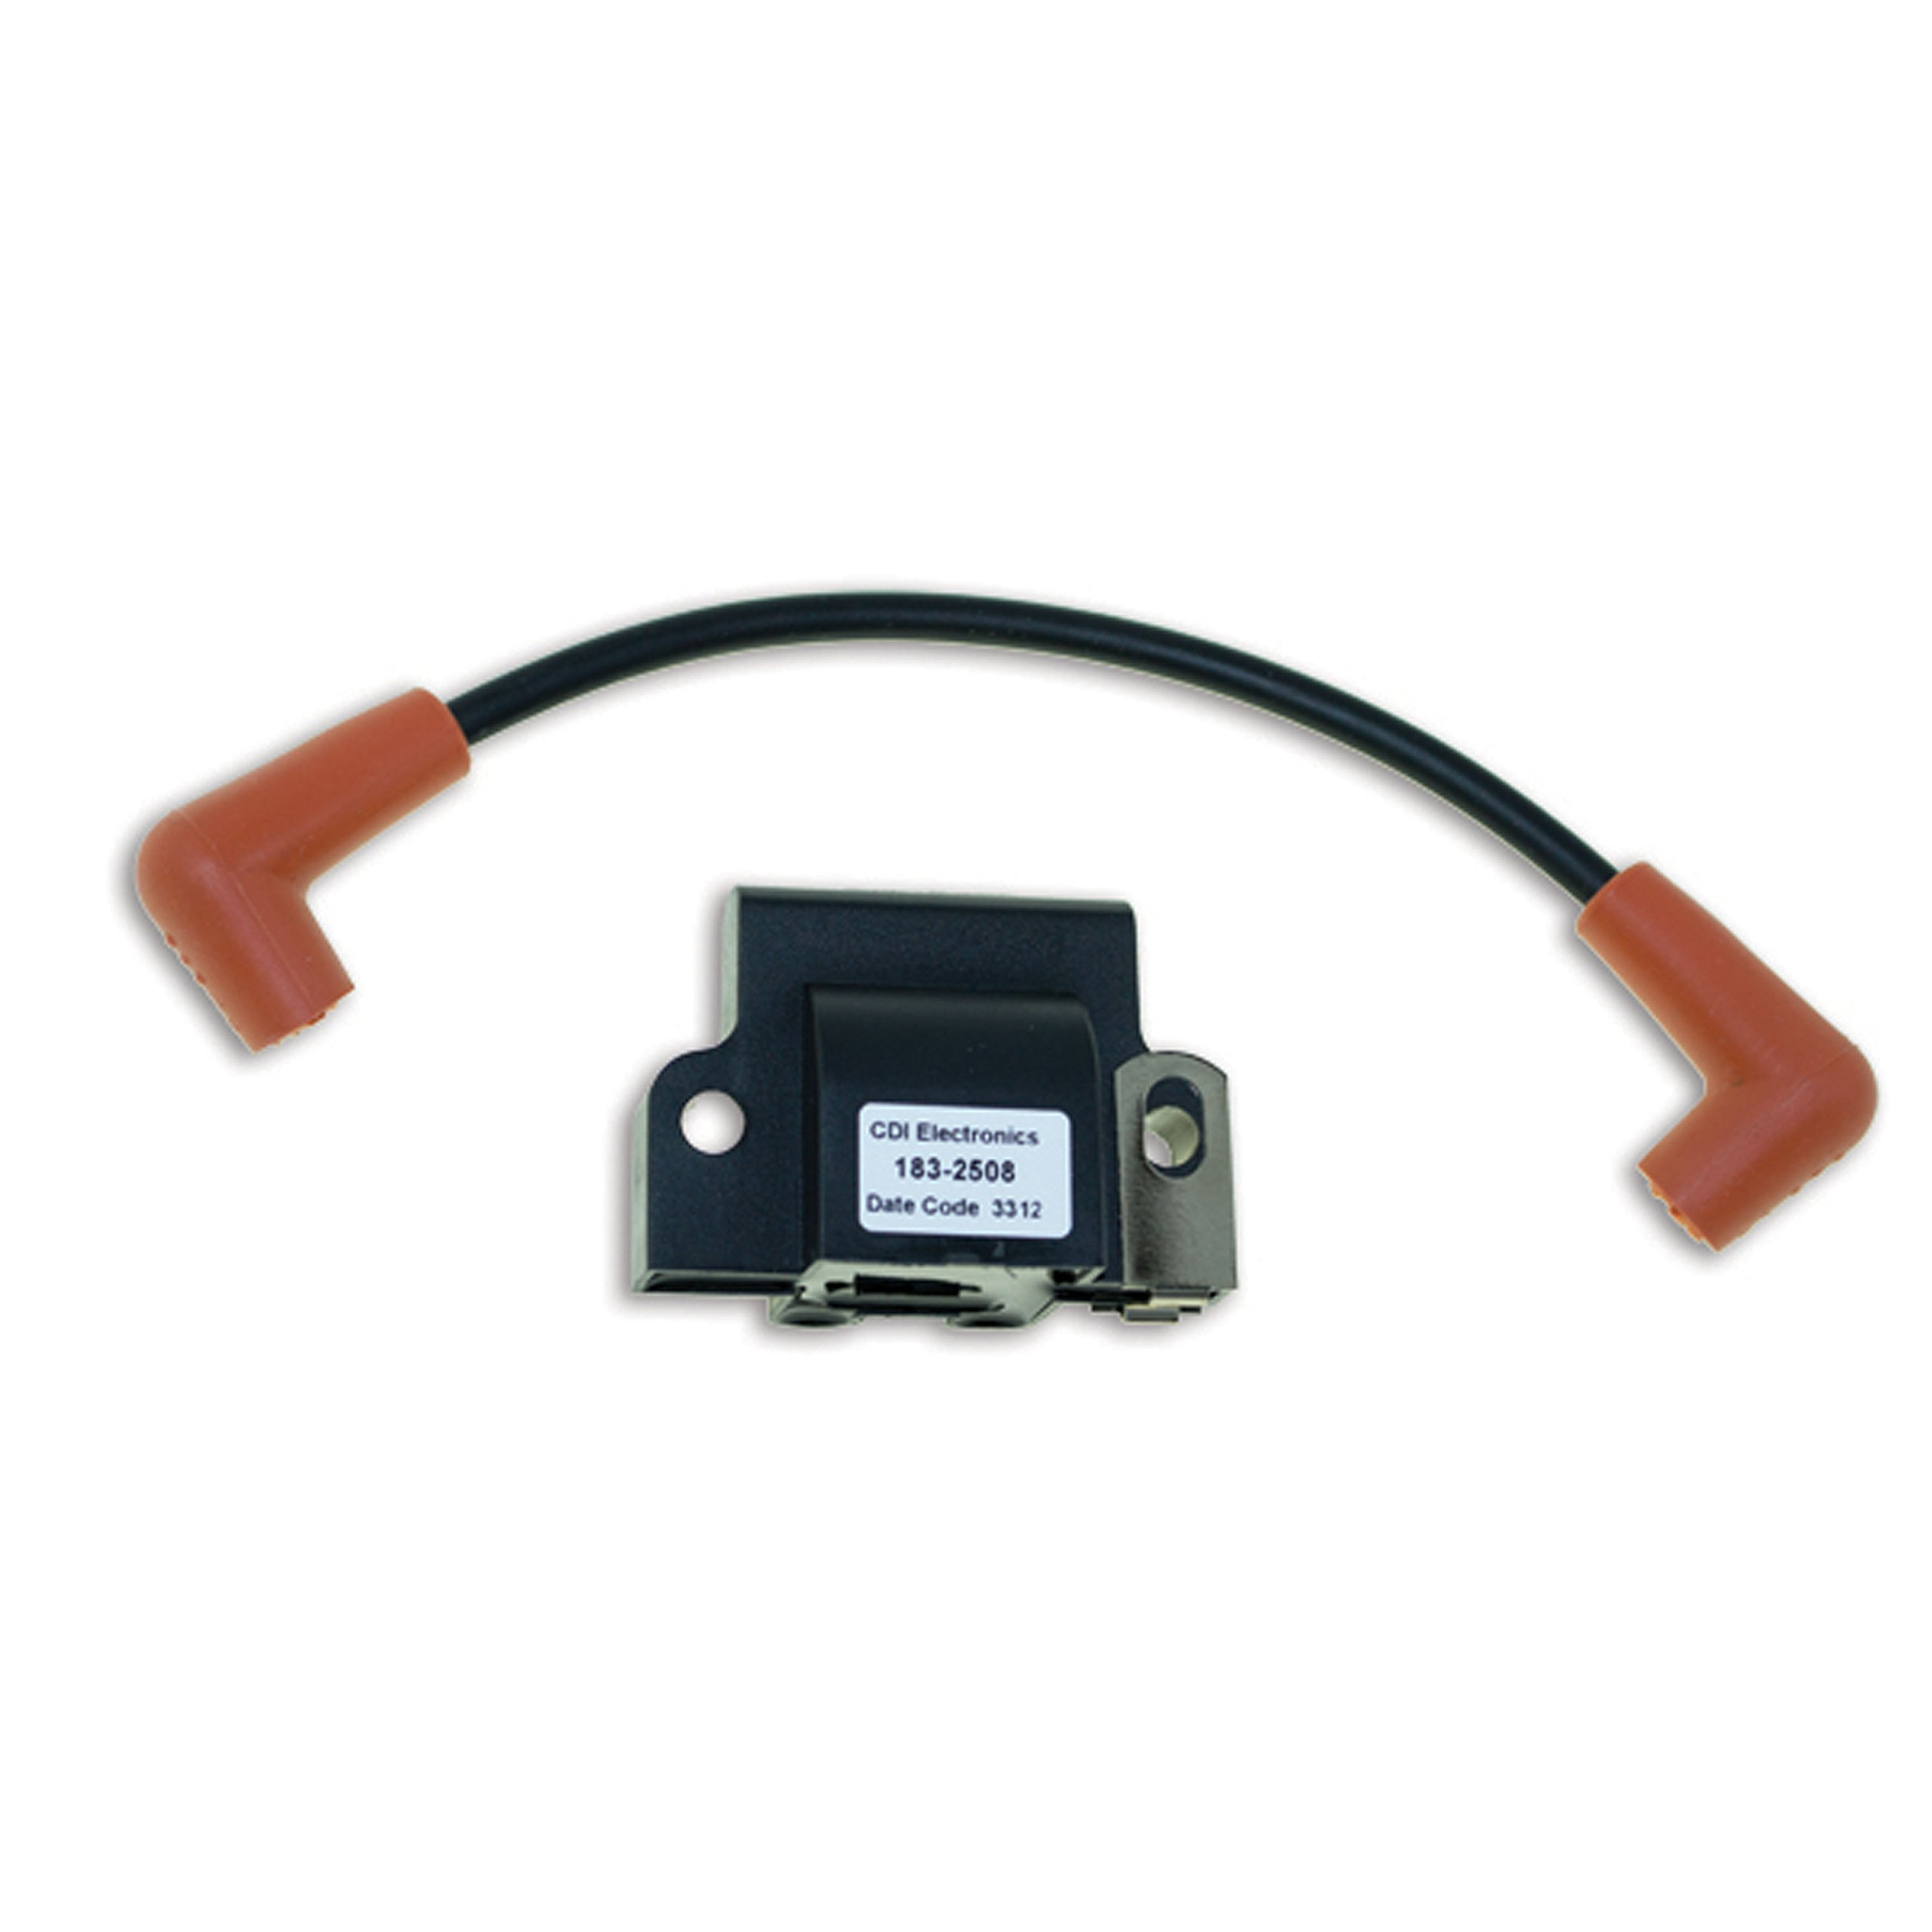 CDI Electronics 183-2508 Johnson/Evinrude Ignition Coil-2 Tower, 1/2/3/4/6/8 Cyl (1985-2005) by CDI Electronics